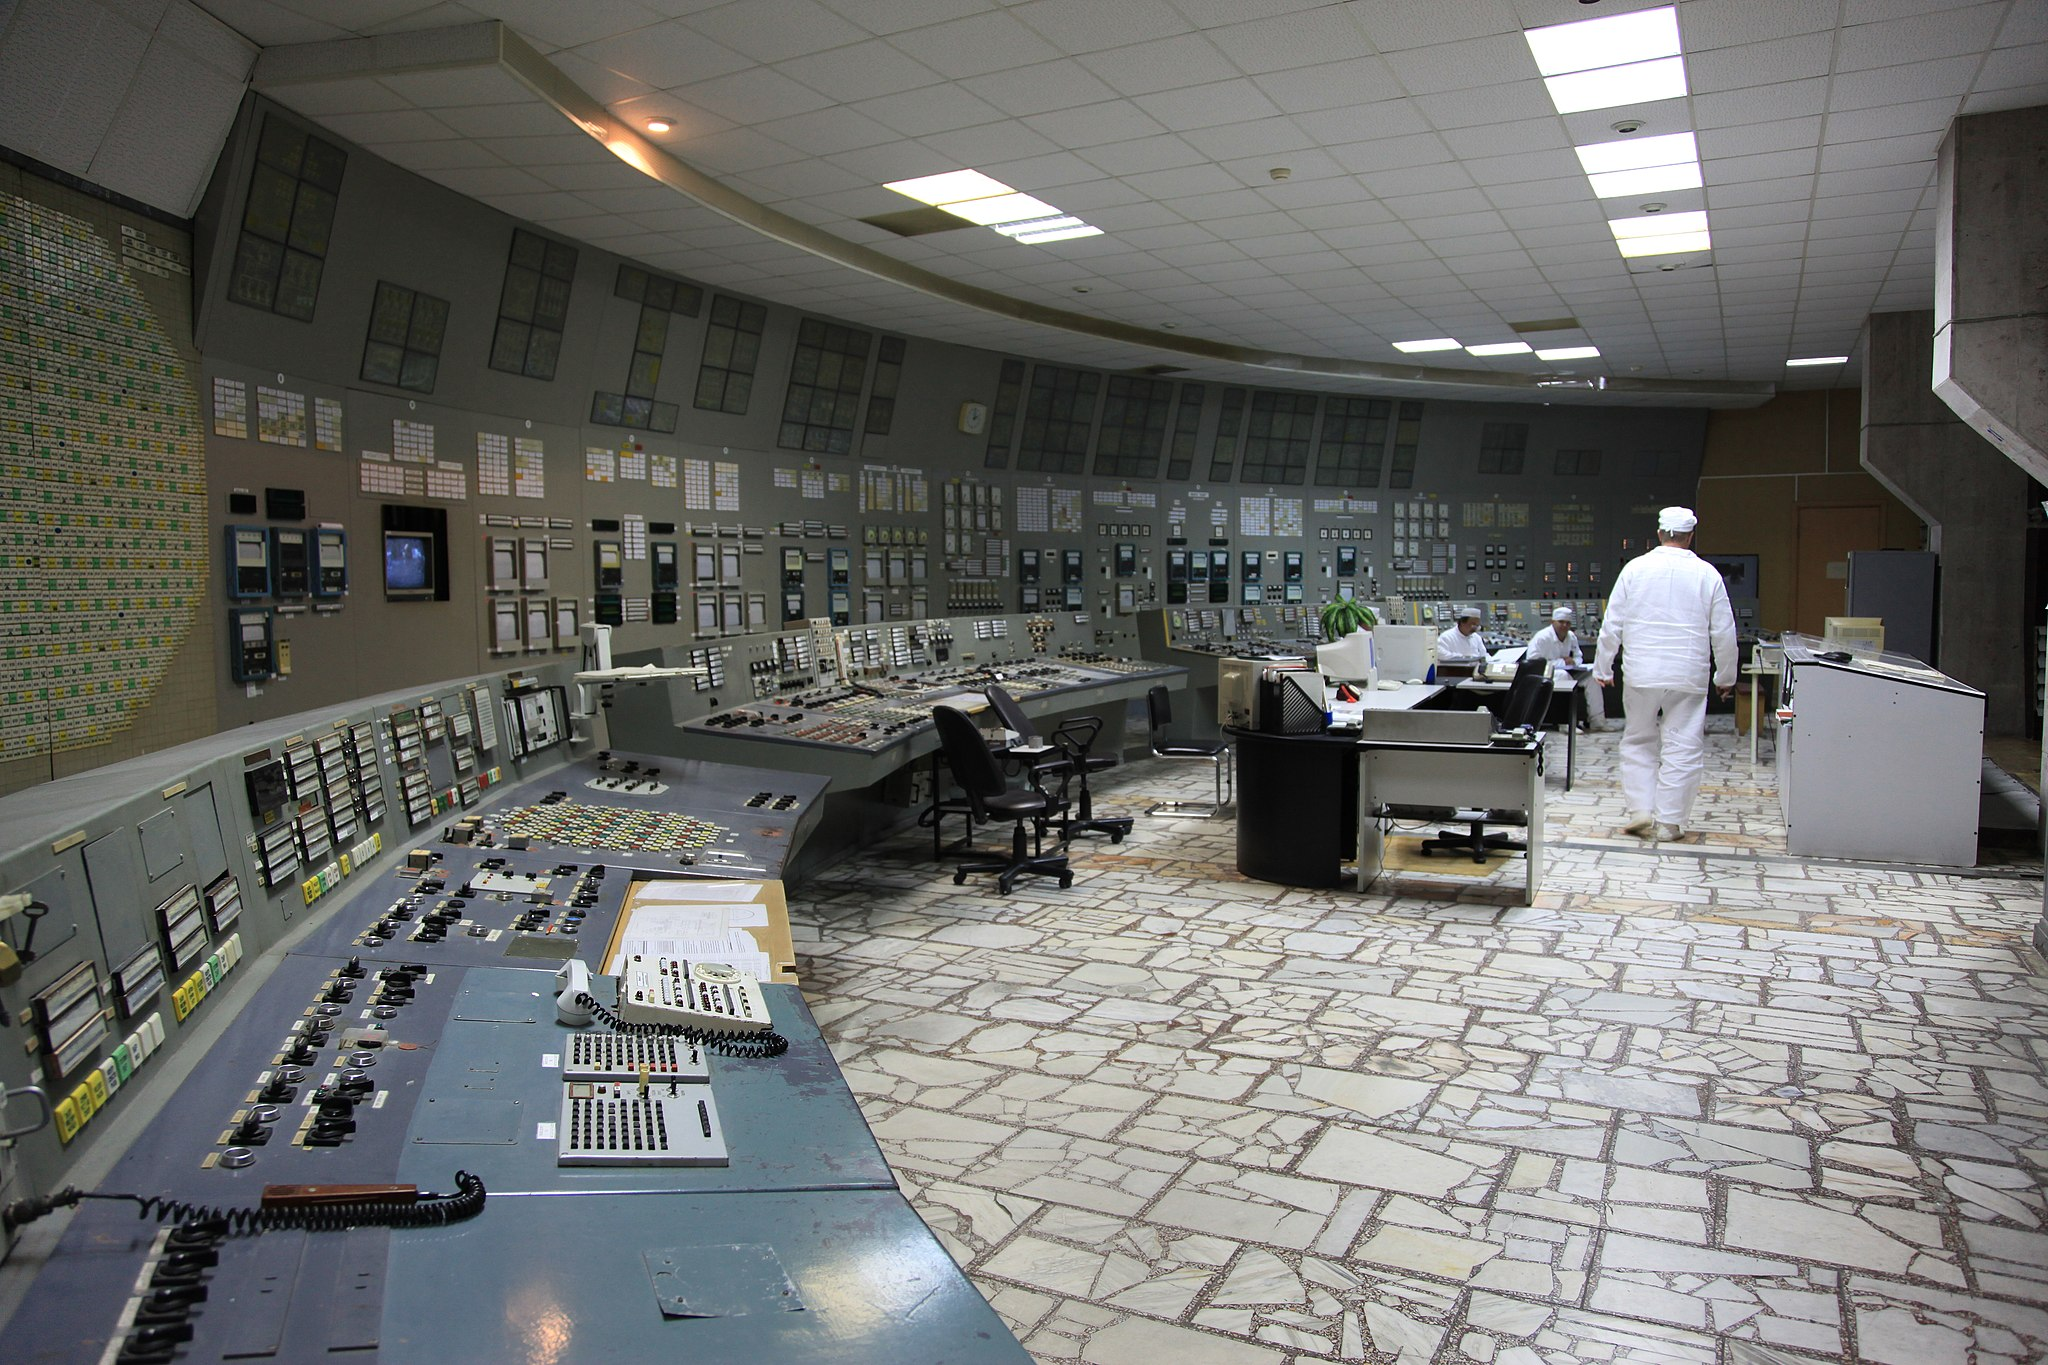 Interior view of the control room of Chernobyl Nuclear Power Plant unit 3. Over 3,000 people continue to work at Chernobyl to monitor nuclear fuel and carry out the decommissioning of the facility.